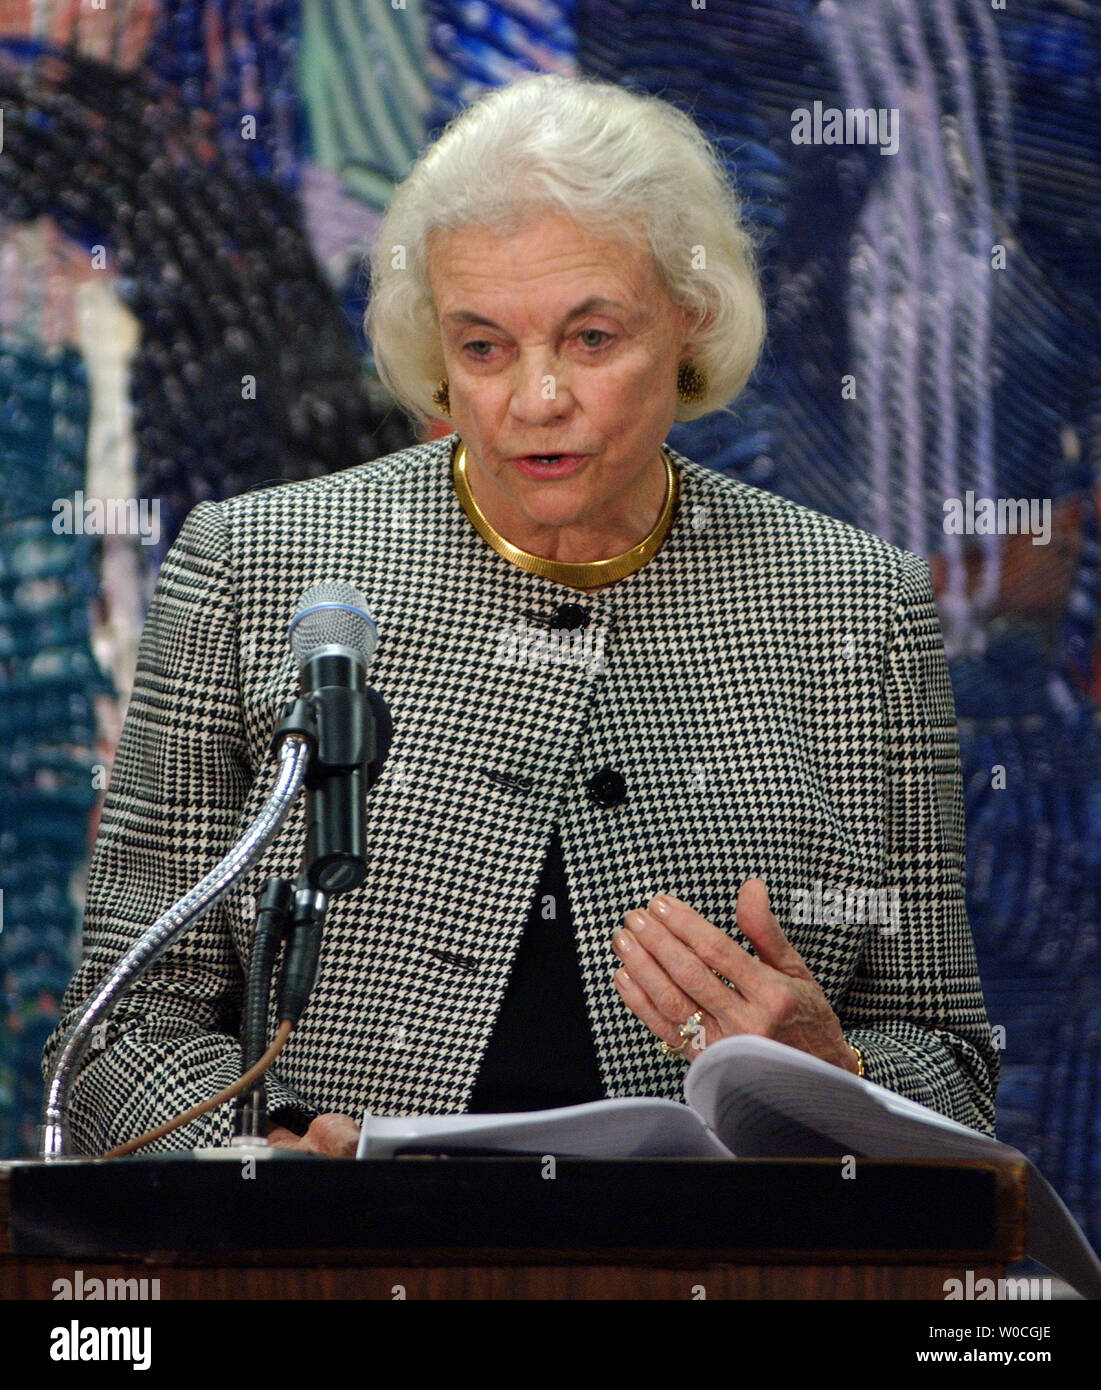 U.S. Supreme Court Associate Justice Sandra Day O'Connor thanks prospective jurors for their service and gives them some advice on how best to fulfill their duty at the Washington, D.C. courthouse on Dec. 9, 2004. O'Connor was participating in an event during which the American Bar Association released new 'principles' concerning jury service designed to help the courts function better.   (UPI Photo/Roger L. Wollenberg) - Stock Image